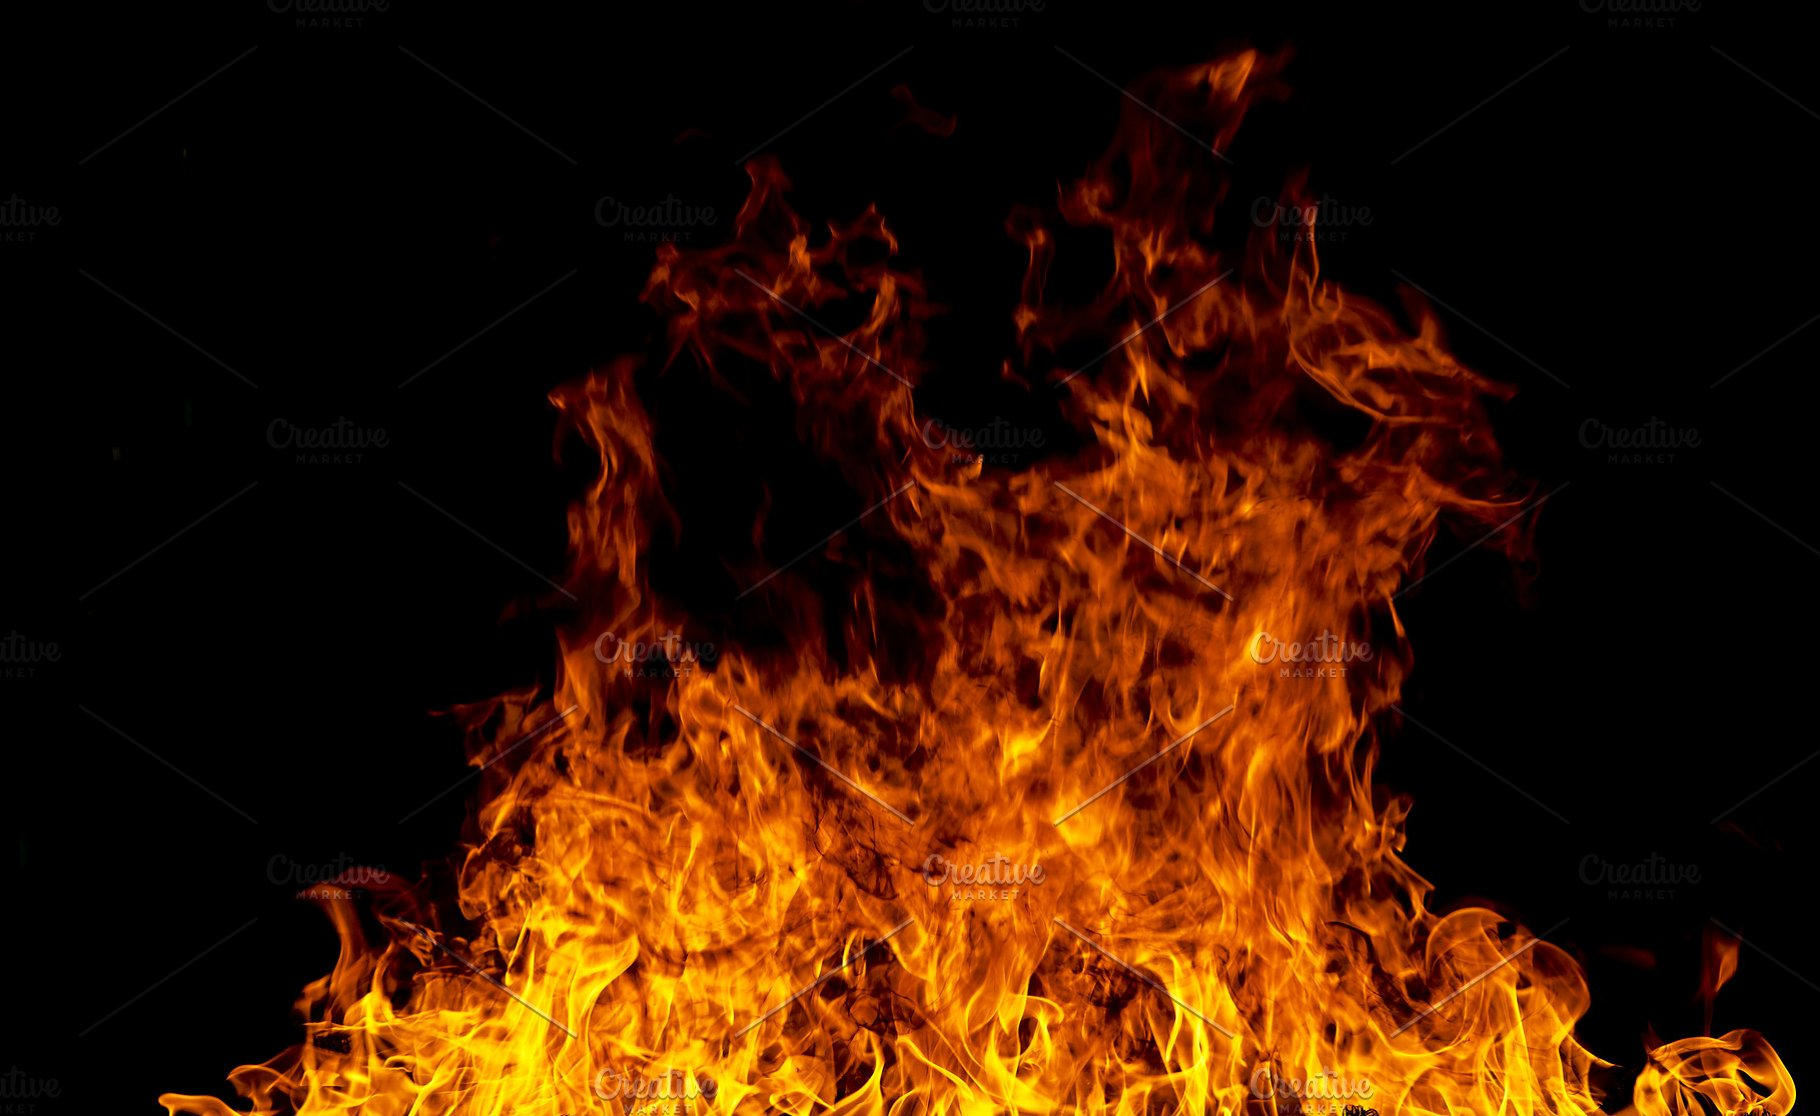 Fire flames on a black background | High-Quality Stock ...